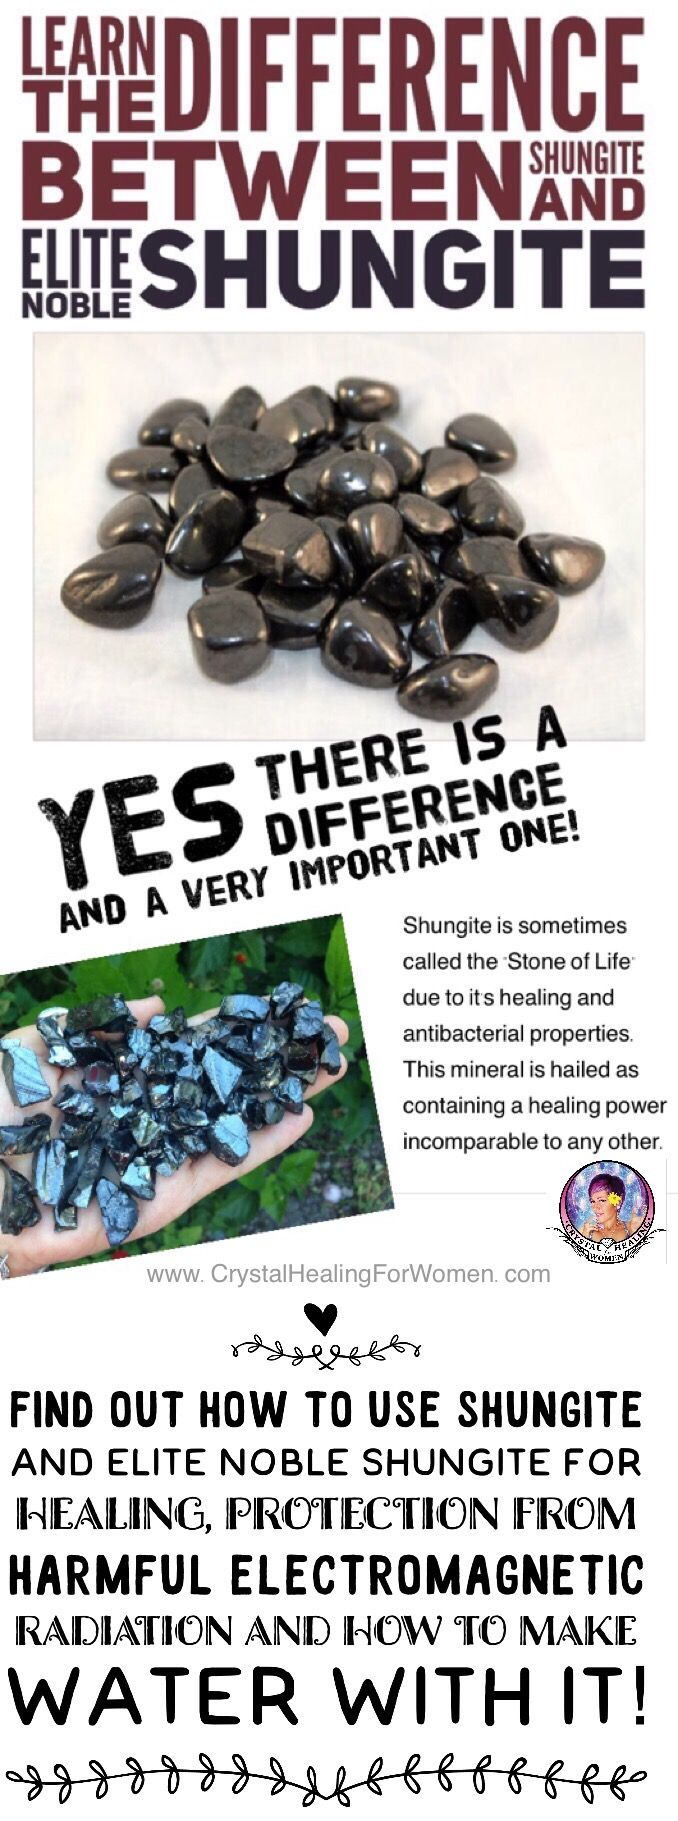 Learn The Difference between Shungite AND Elite Noble